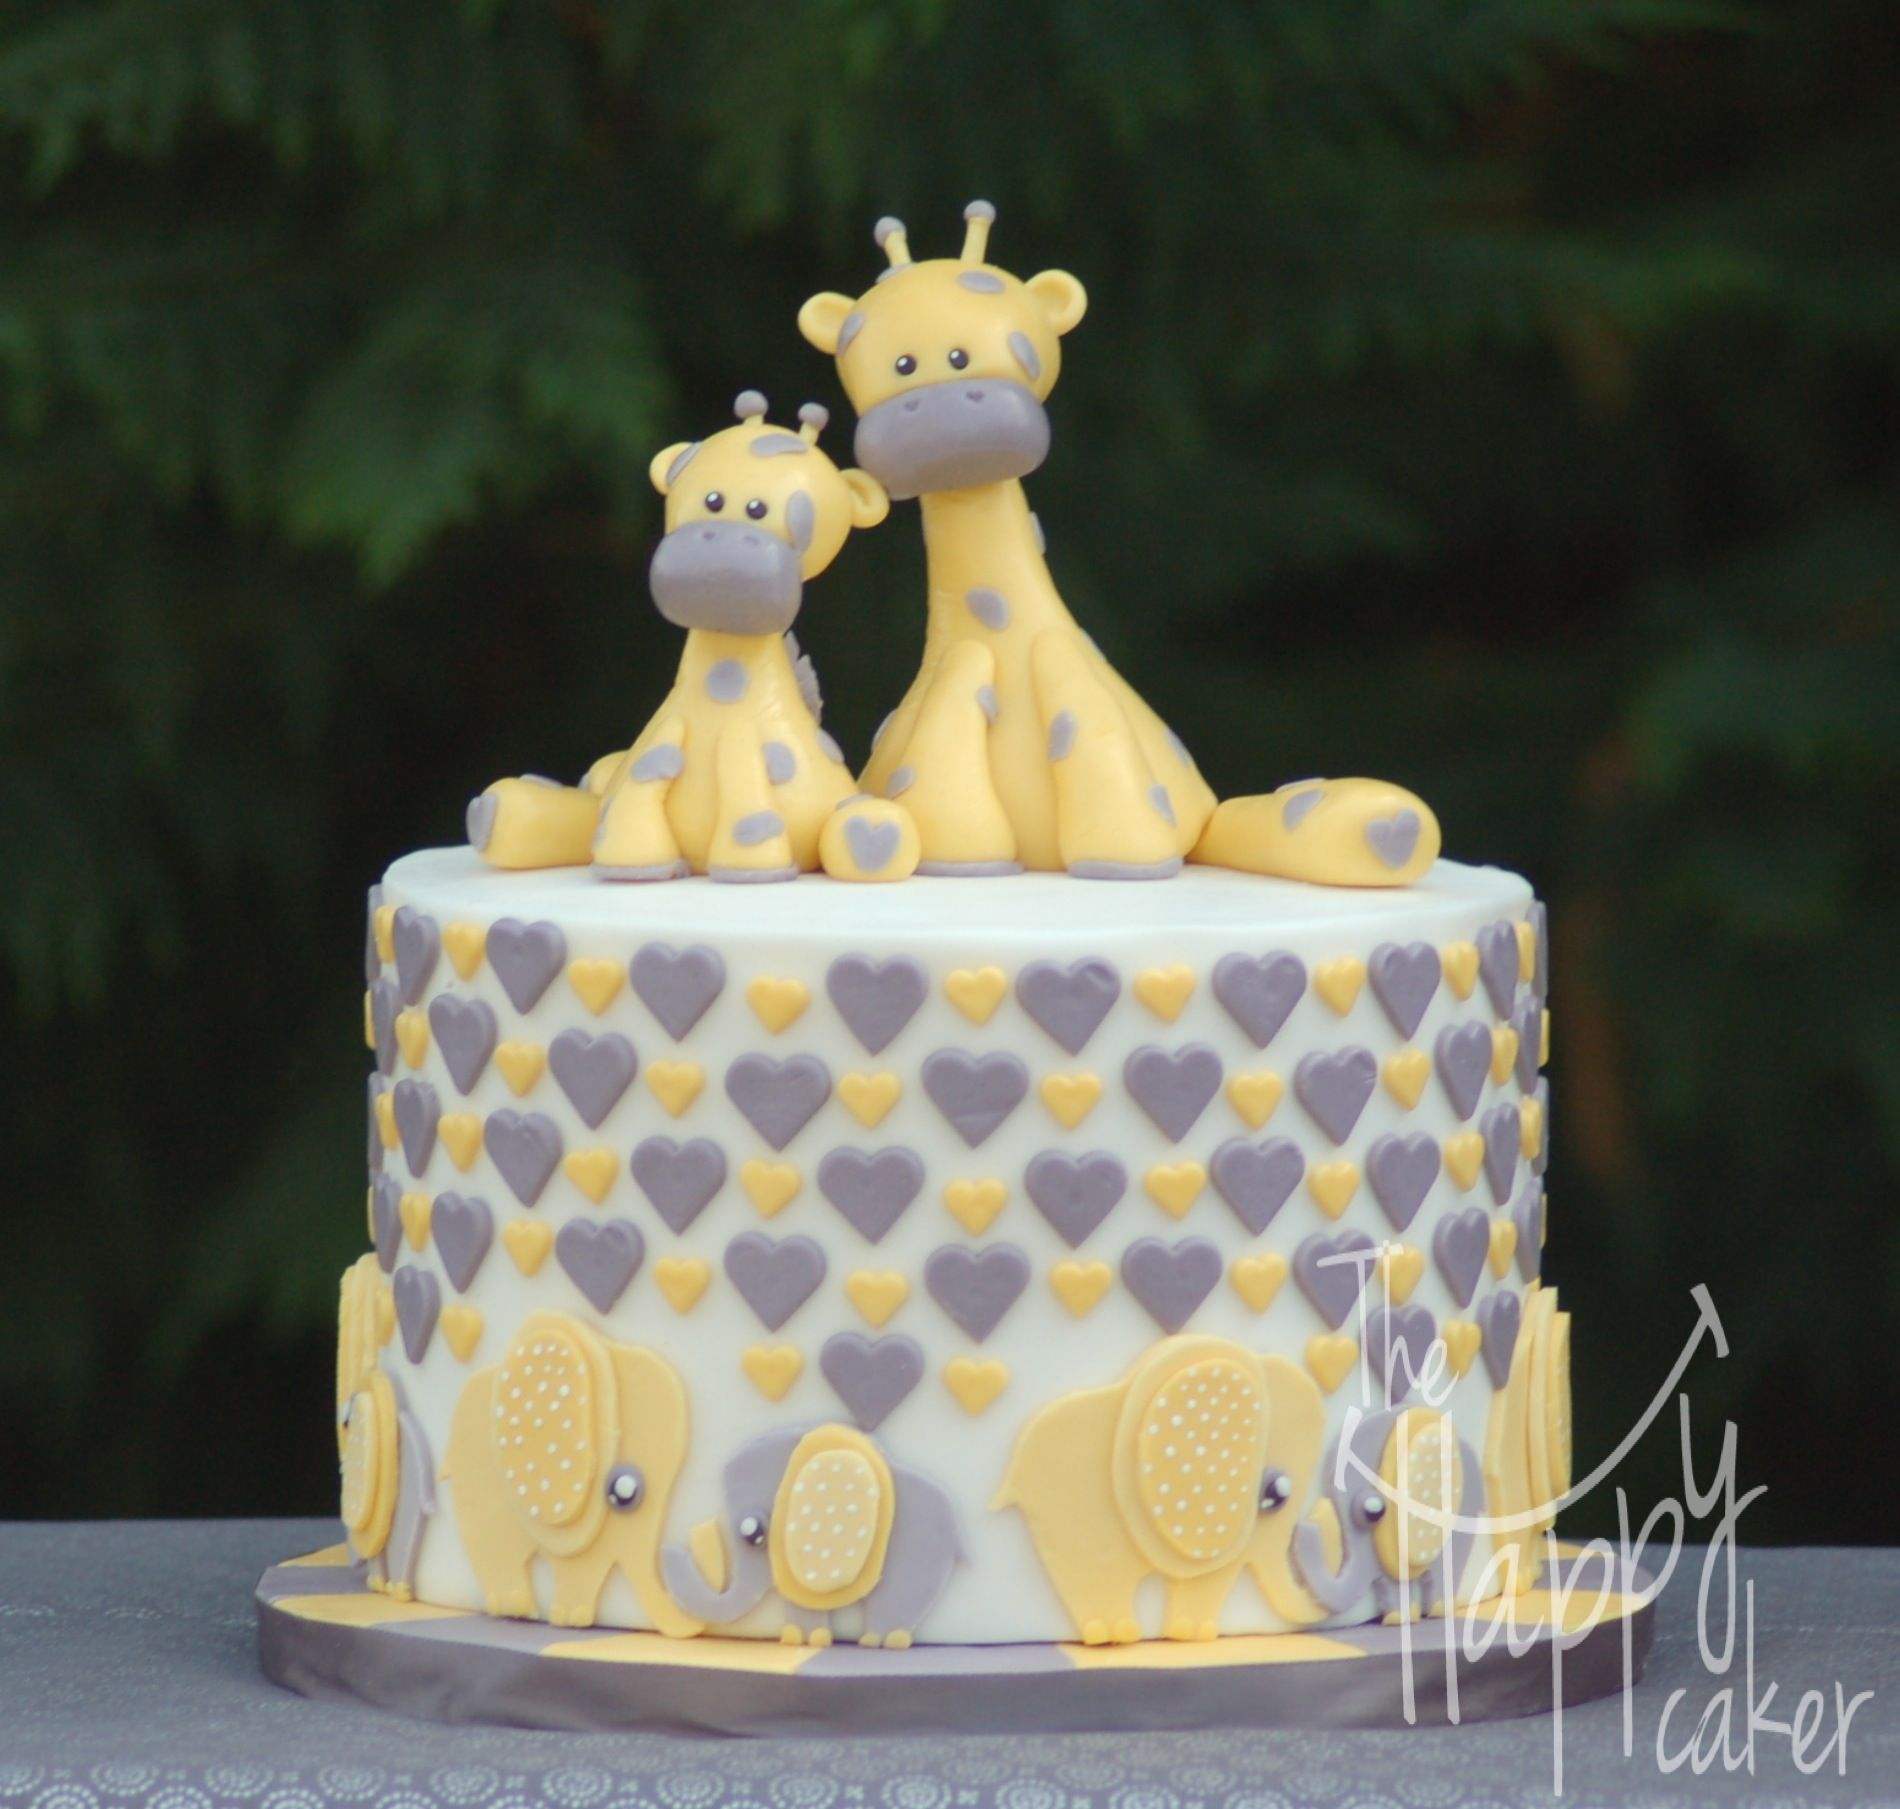 Elephants and giraffes Yellow and gray scheme elephant and giraffe